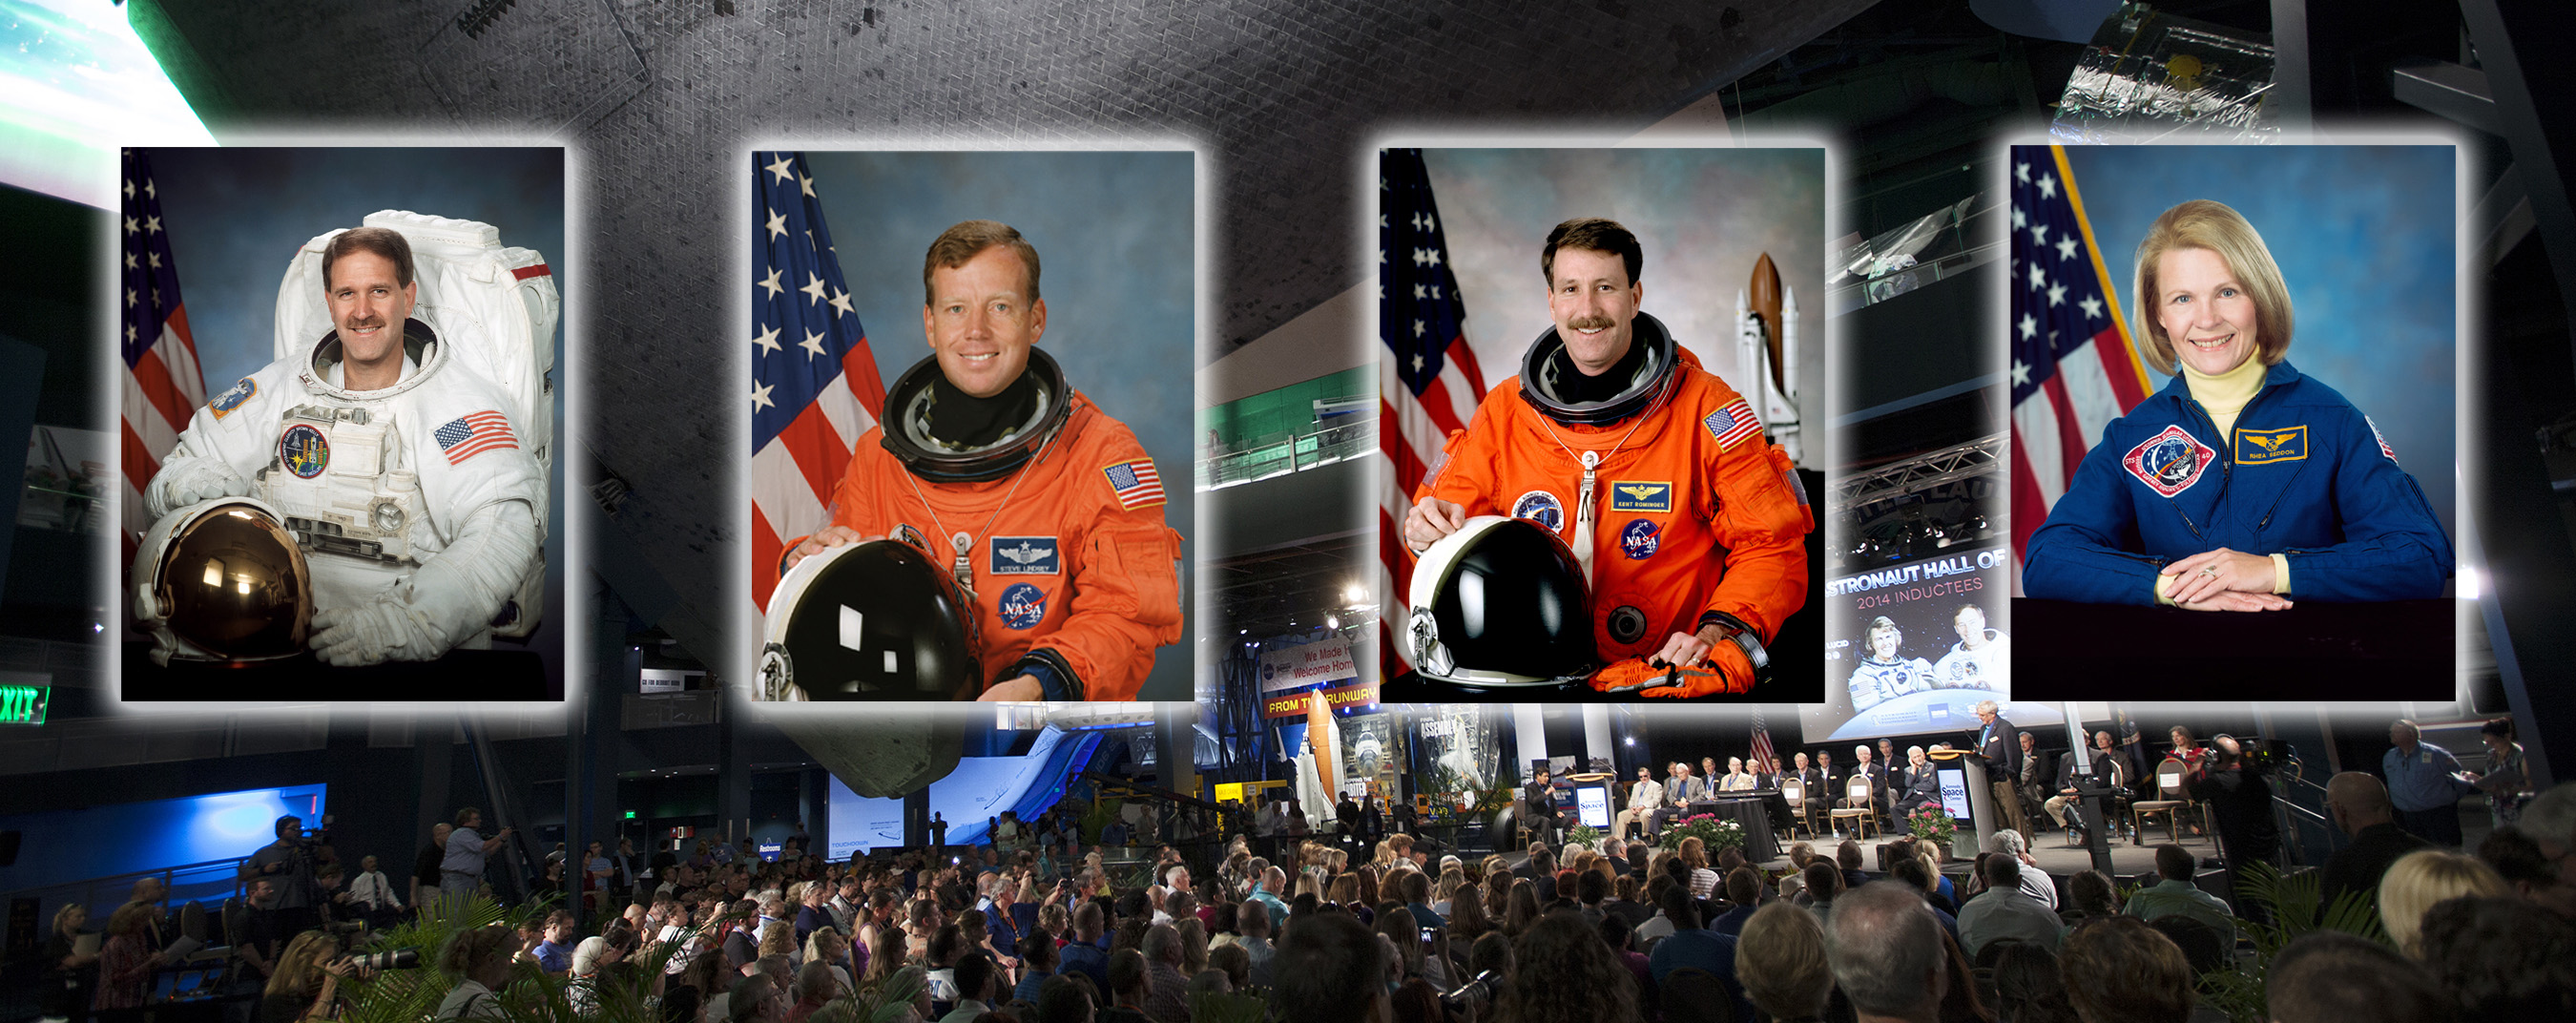 astronaut hall of fame members - photo #7